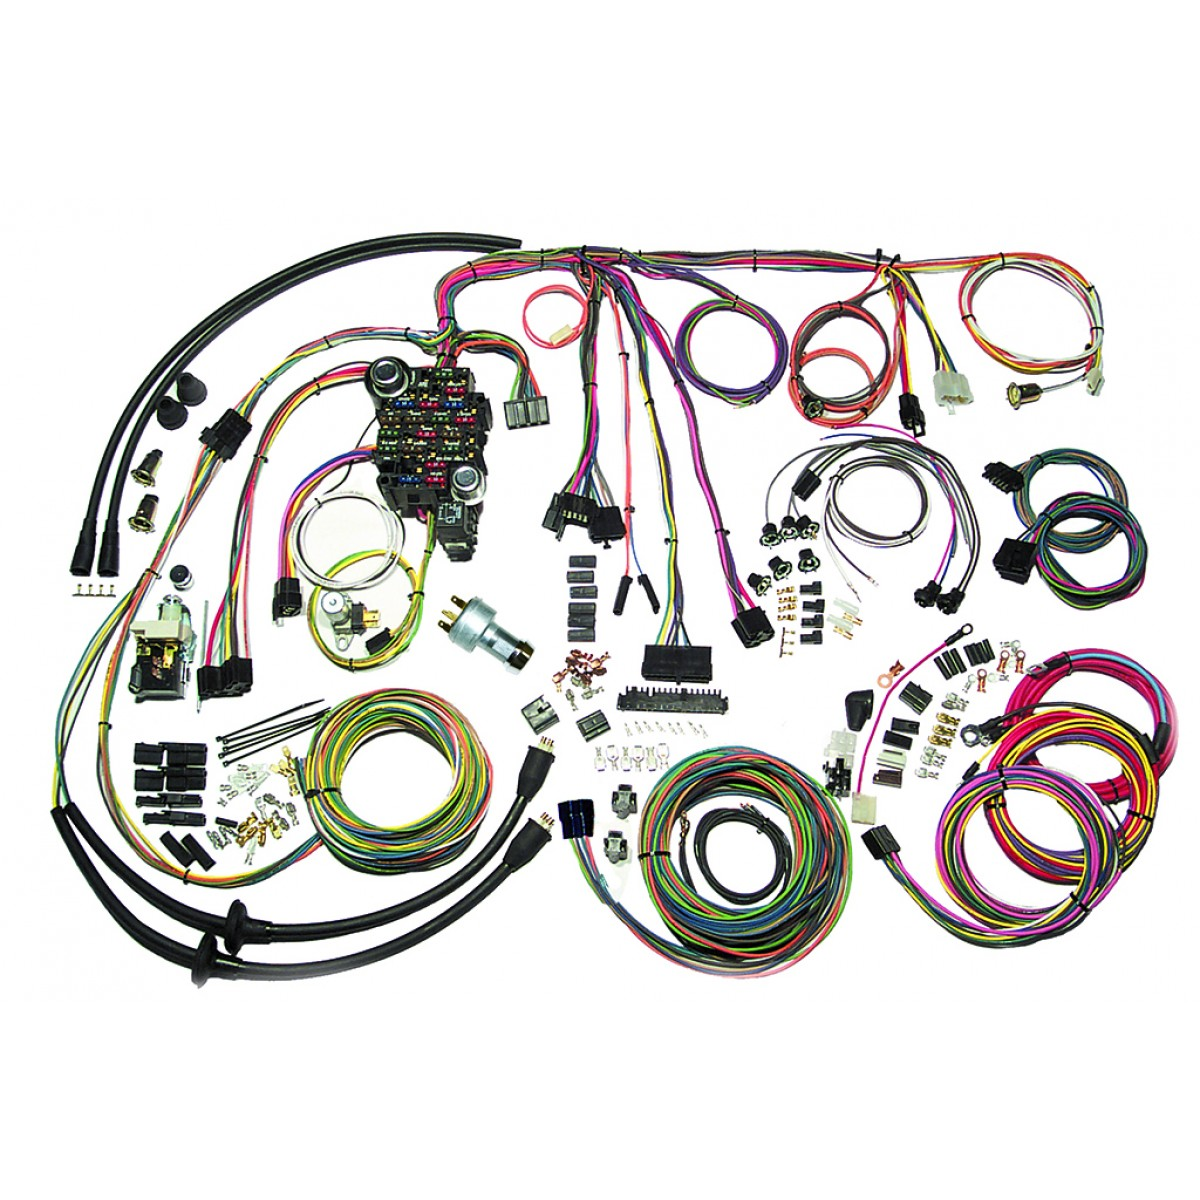 Wiring Harness Kit Diagram For You All Camaro 57 Chevy Belair Wire Complete 1957 Rh Code510 Com